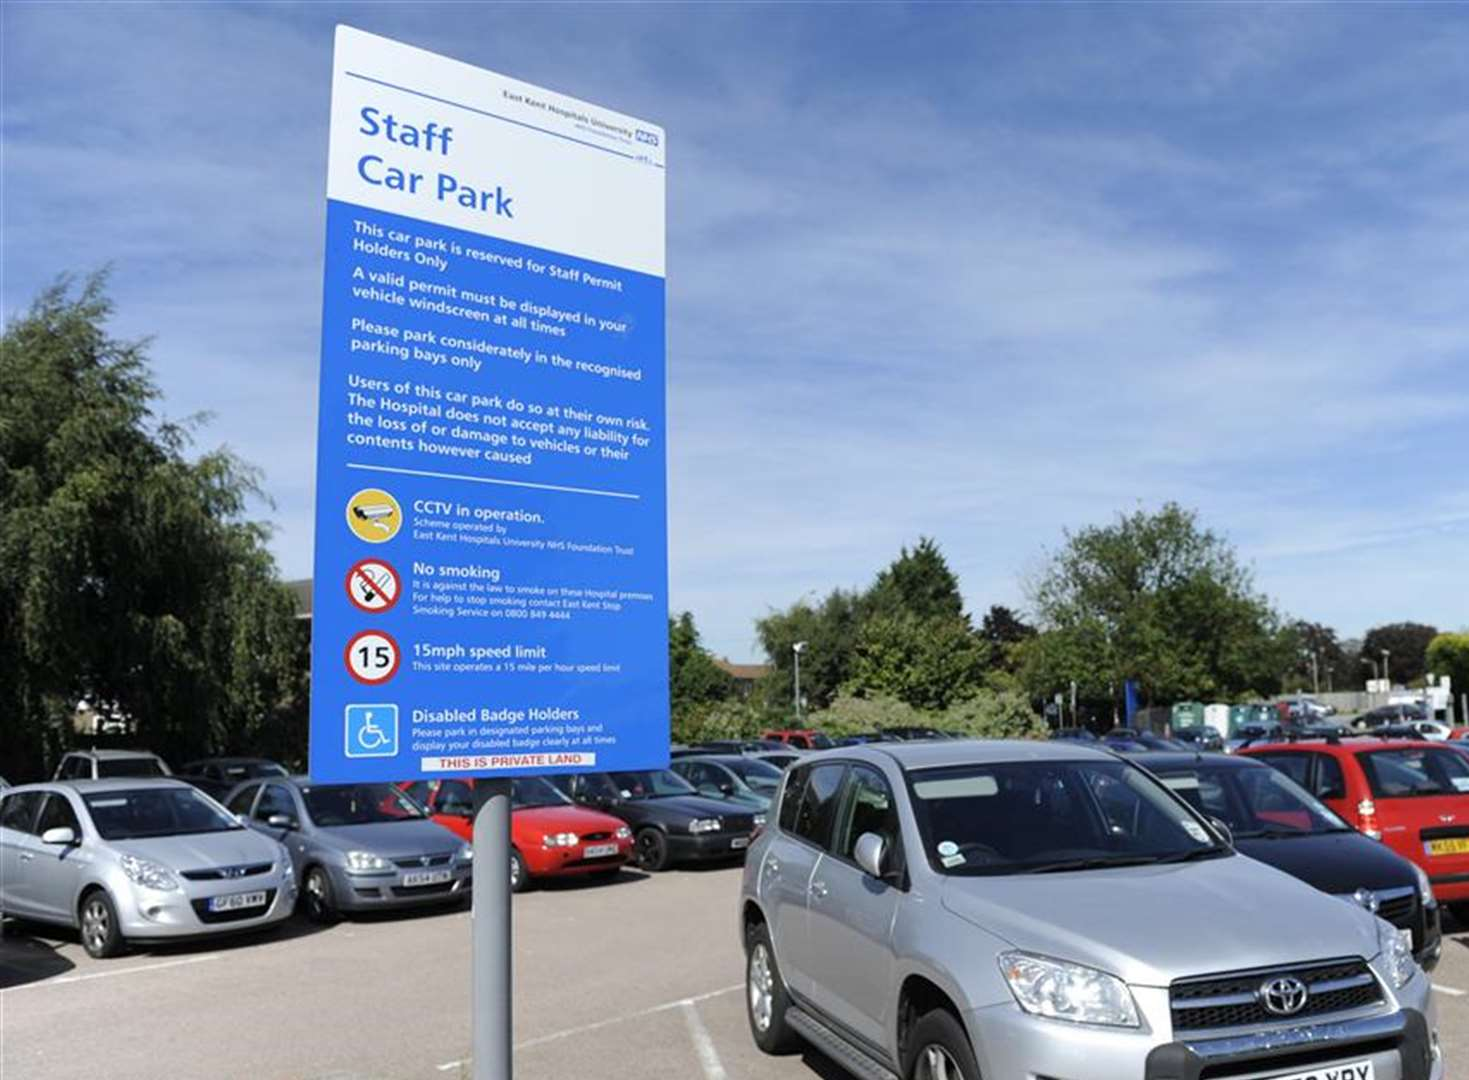 Hospital staff pay £1.5 million a year to park at work